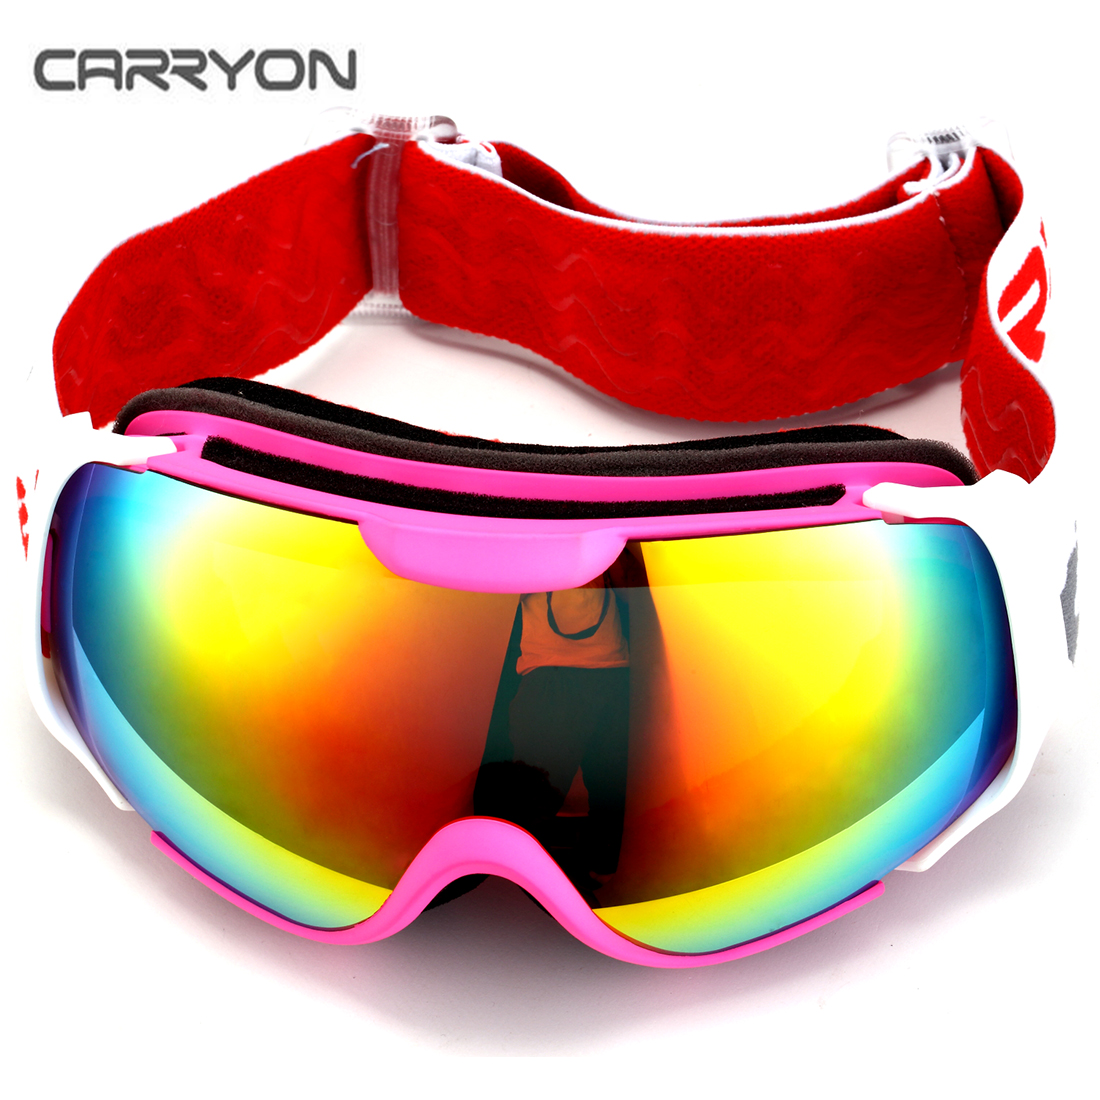 Carryon Authorized Kids Snowboard Goggles Ski Glasses Spherical Lens Anti-fog Anti-slip Strap Pink